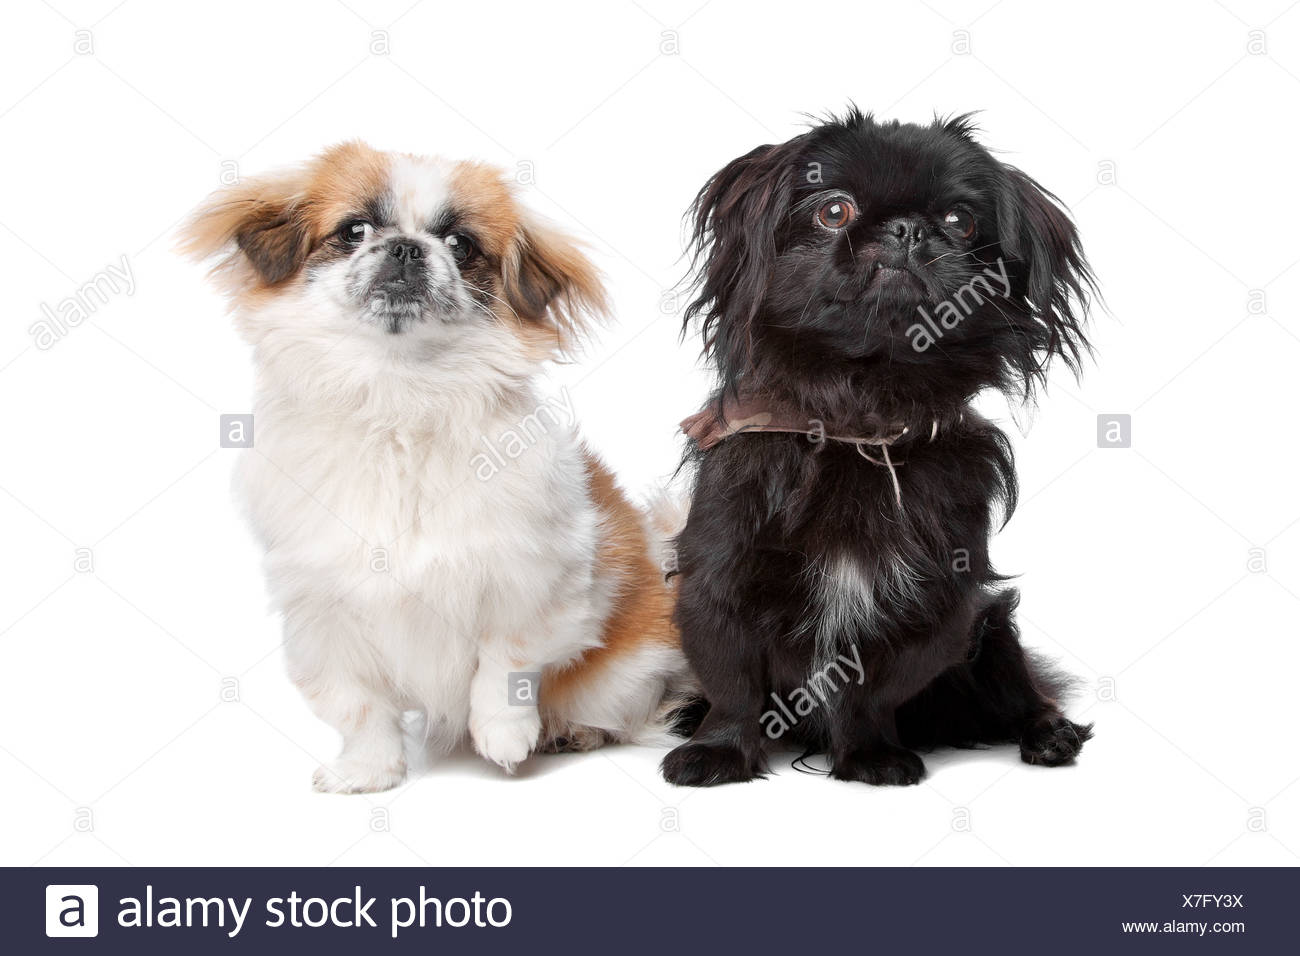 Hello, please tell me how Pekingese dogs are small children. Is there a danger 7